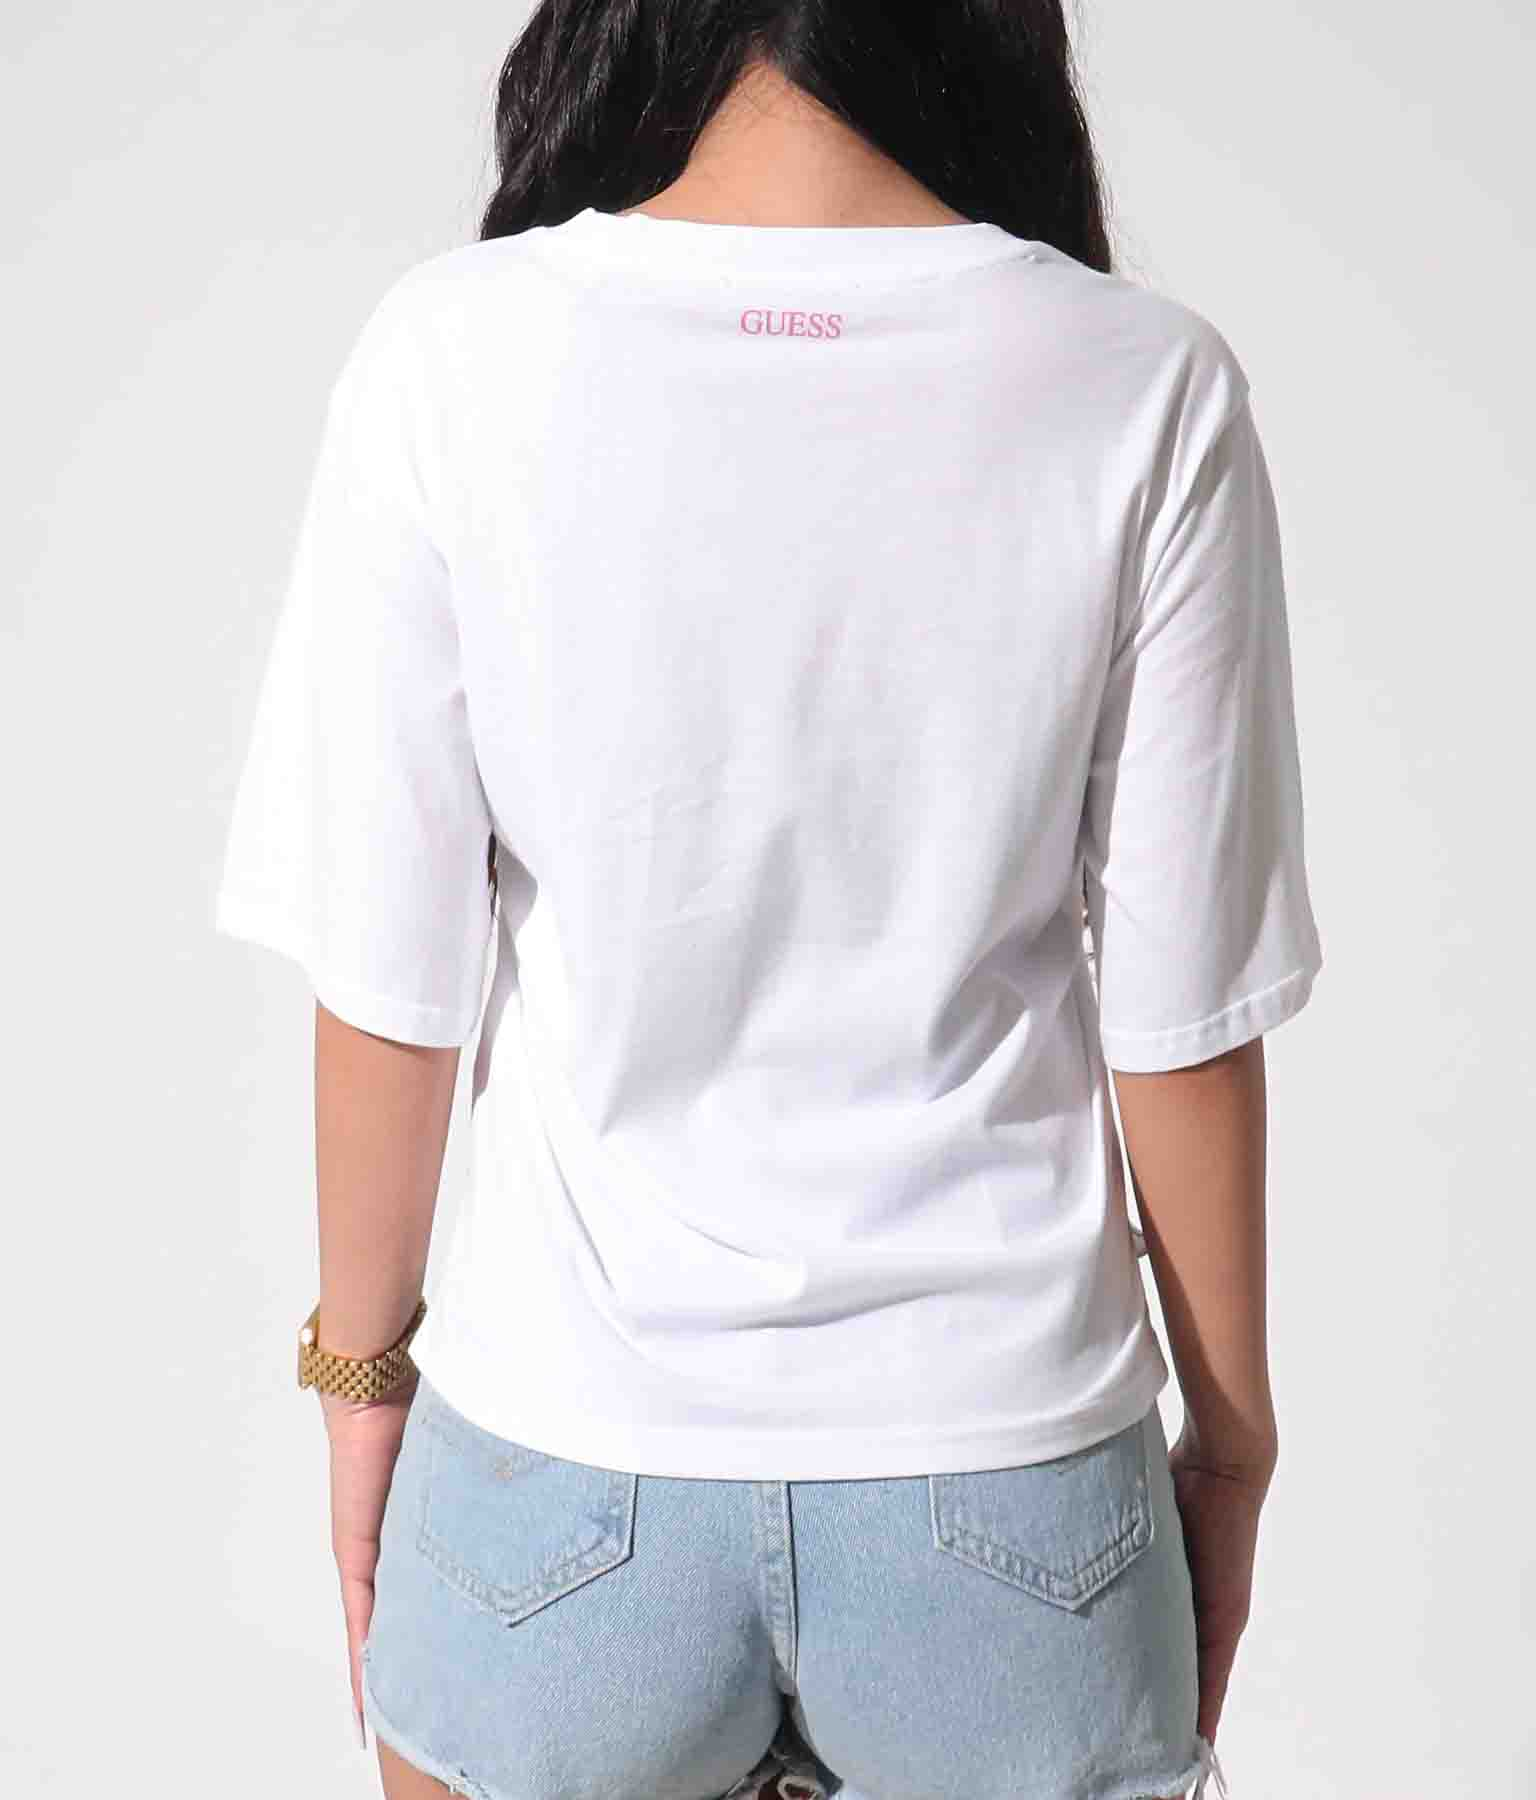 SS RN MARCELA TEE | GUESS